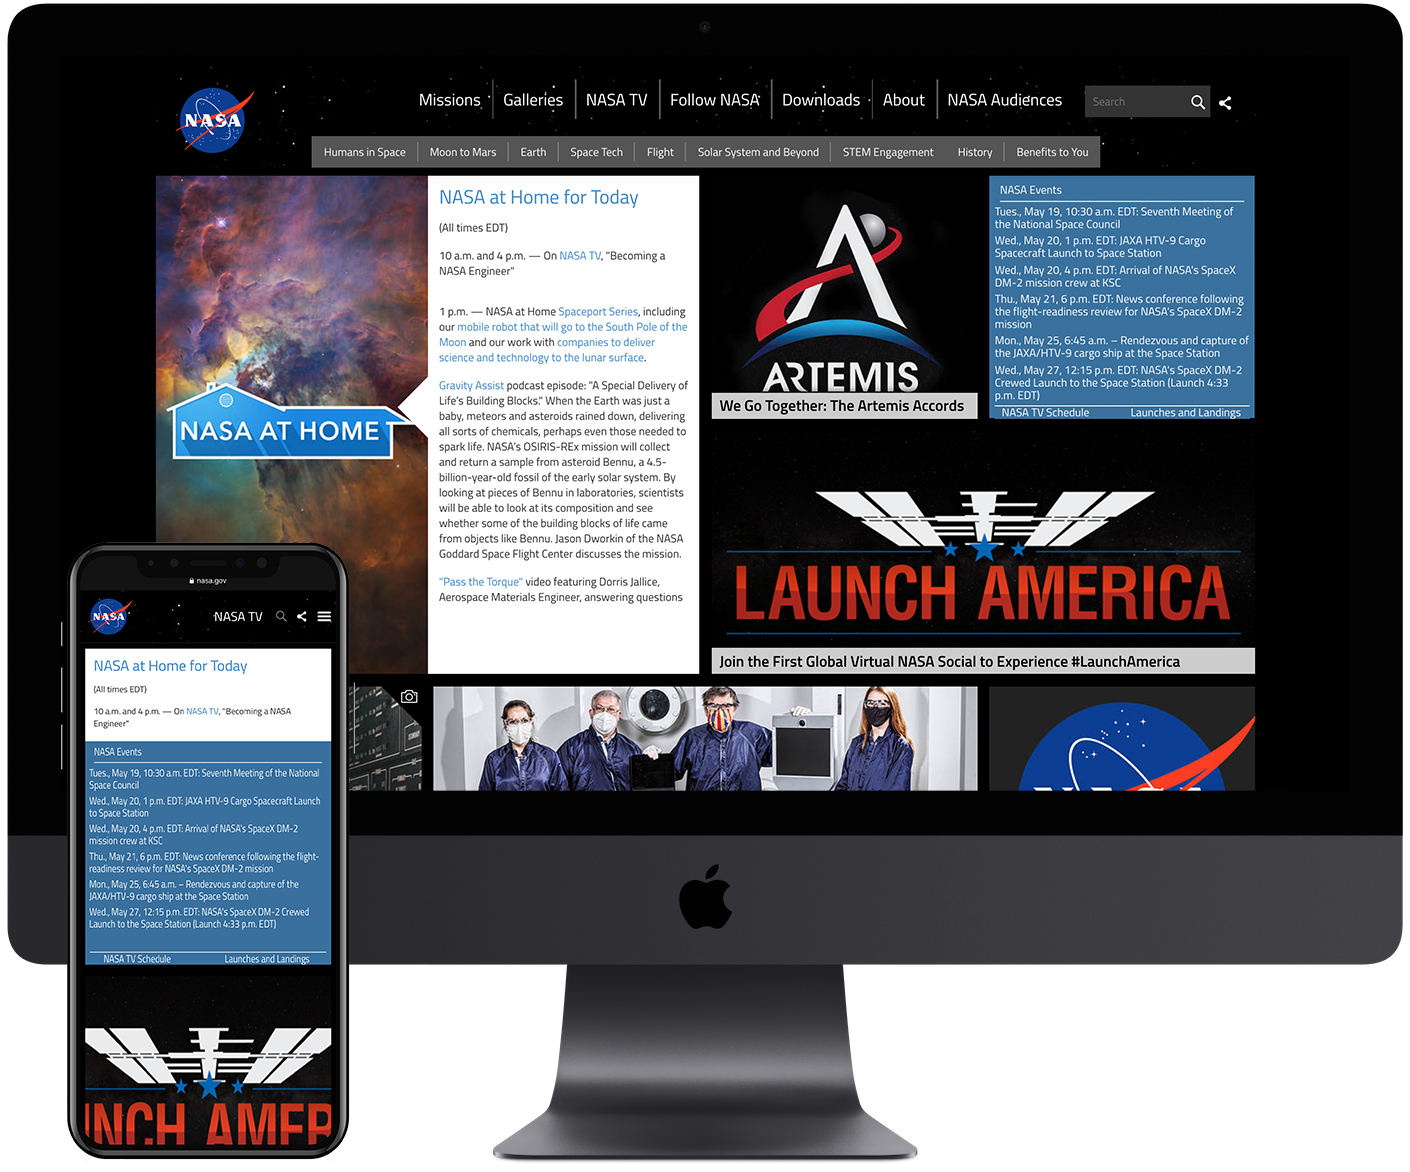 NASA DRUPAL DEVELOPMENT